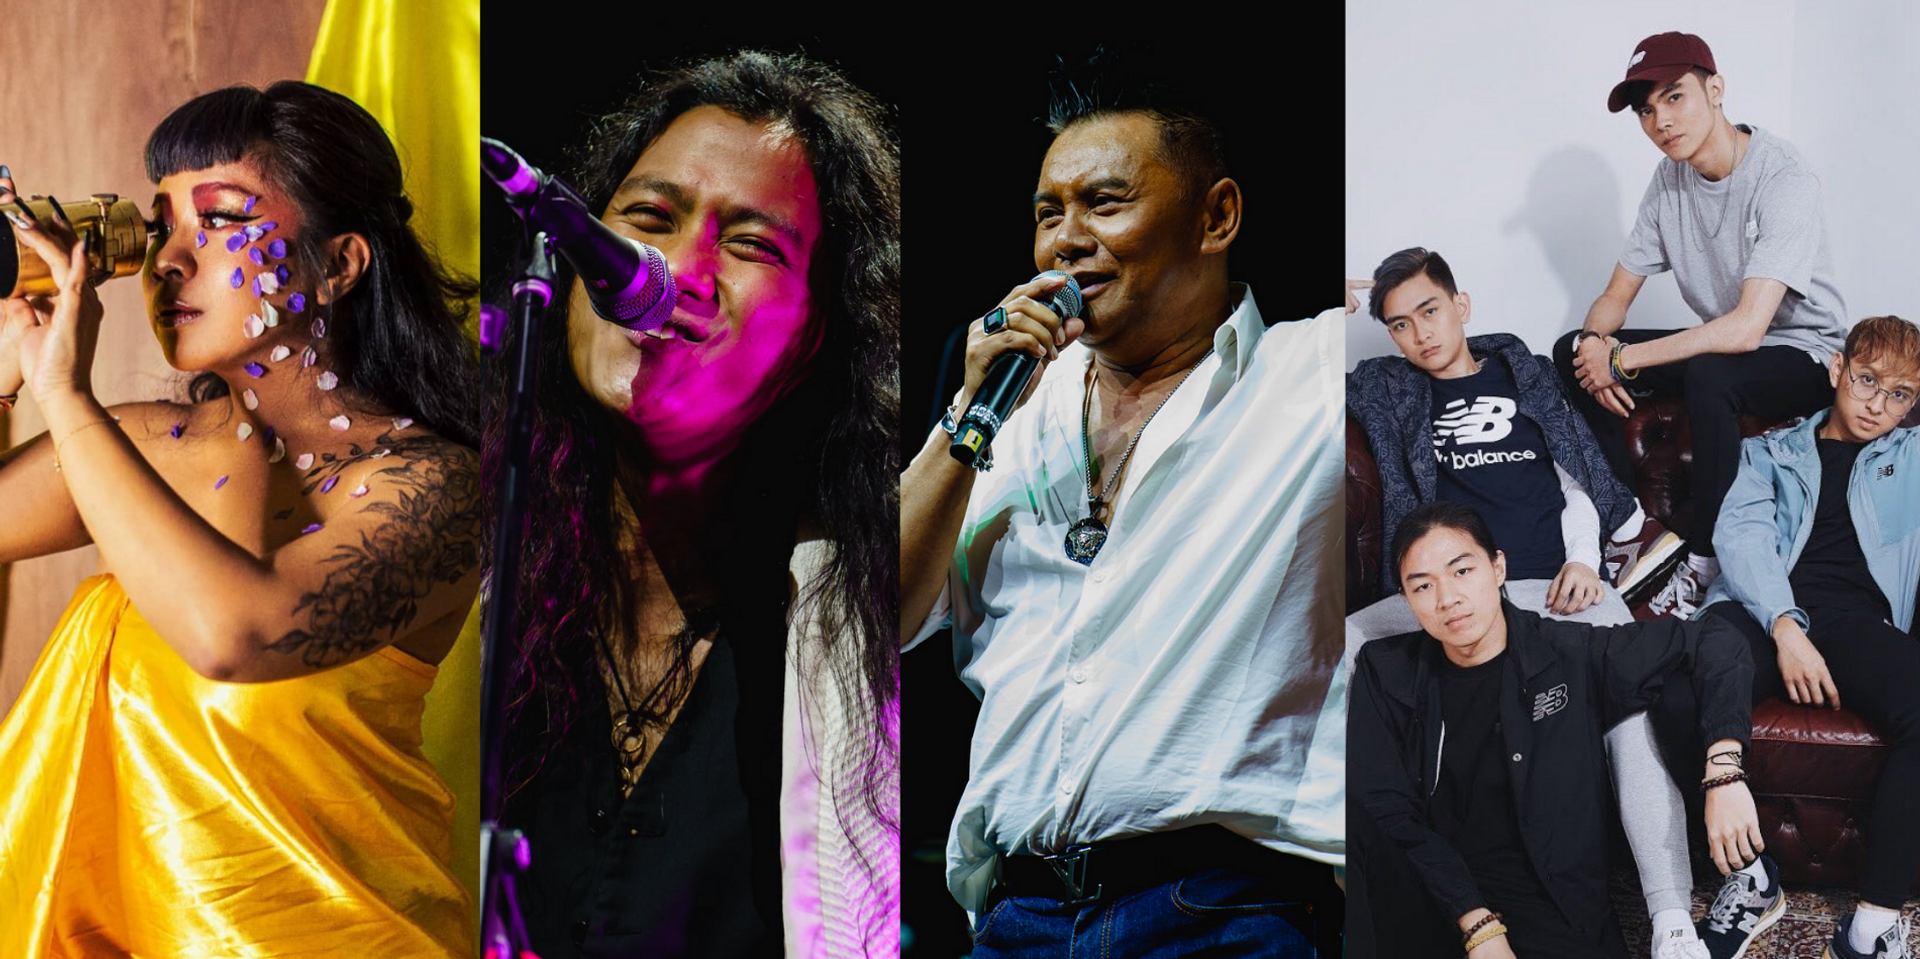 Zee Avi, Zainal Abidin, Muzza, and Insomniacks to perform at Live4Malaysia concert series this August and September